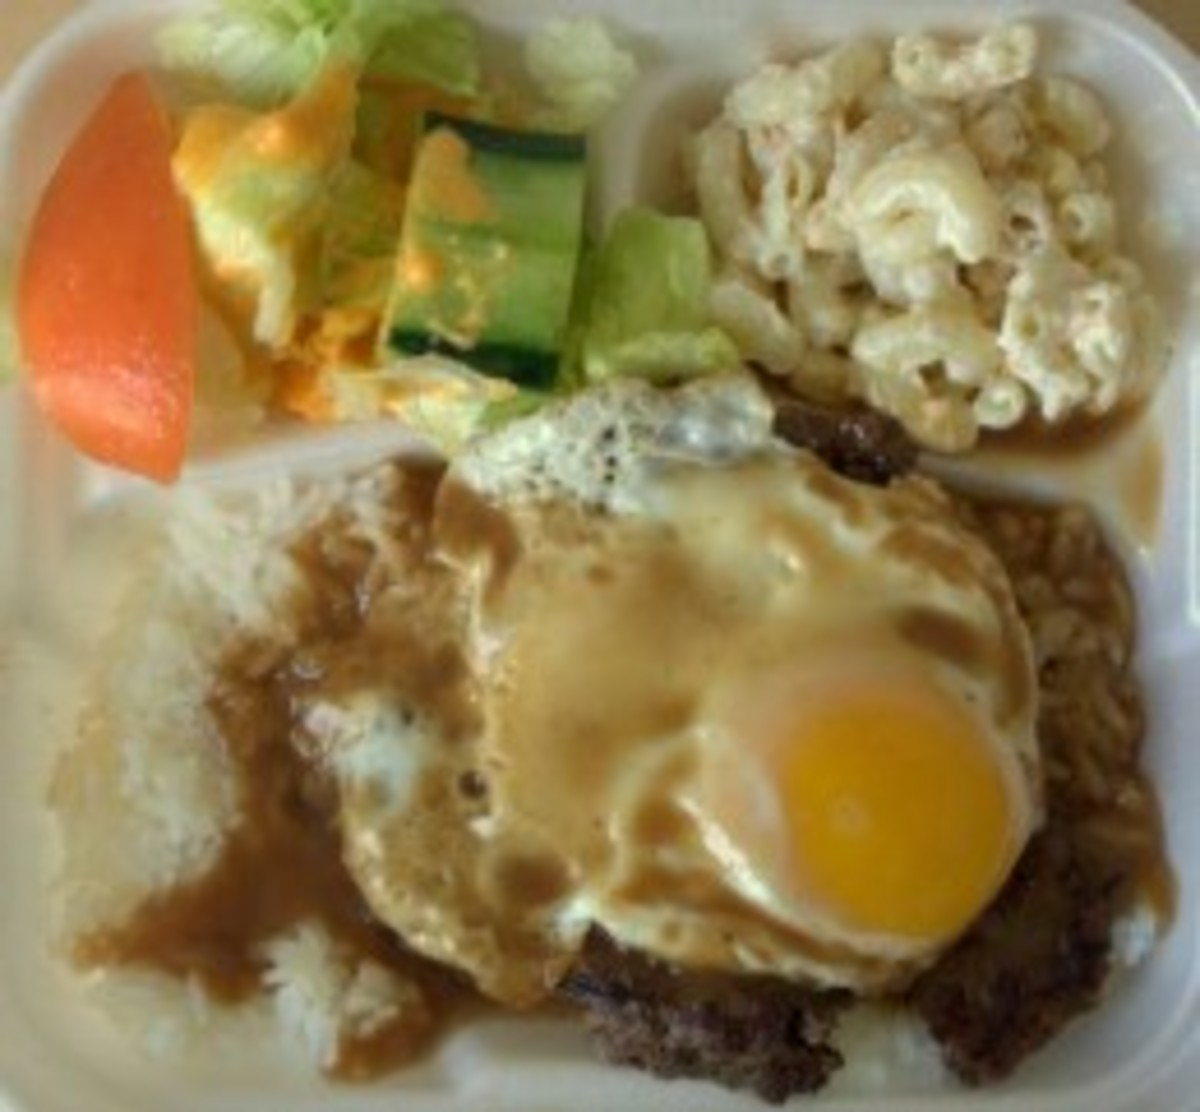 Loco Moco with a scoop of Macaroni Salad on the side